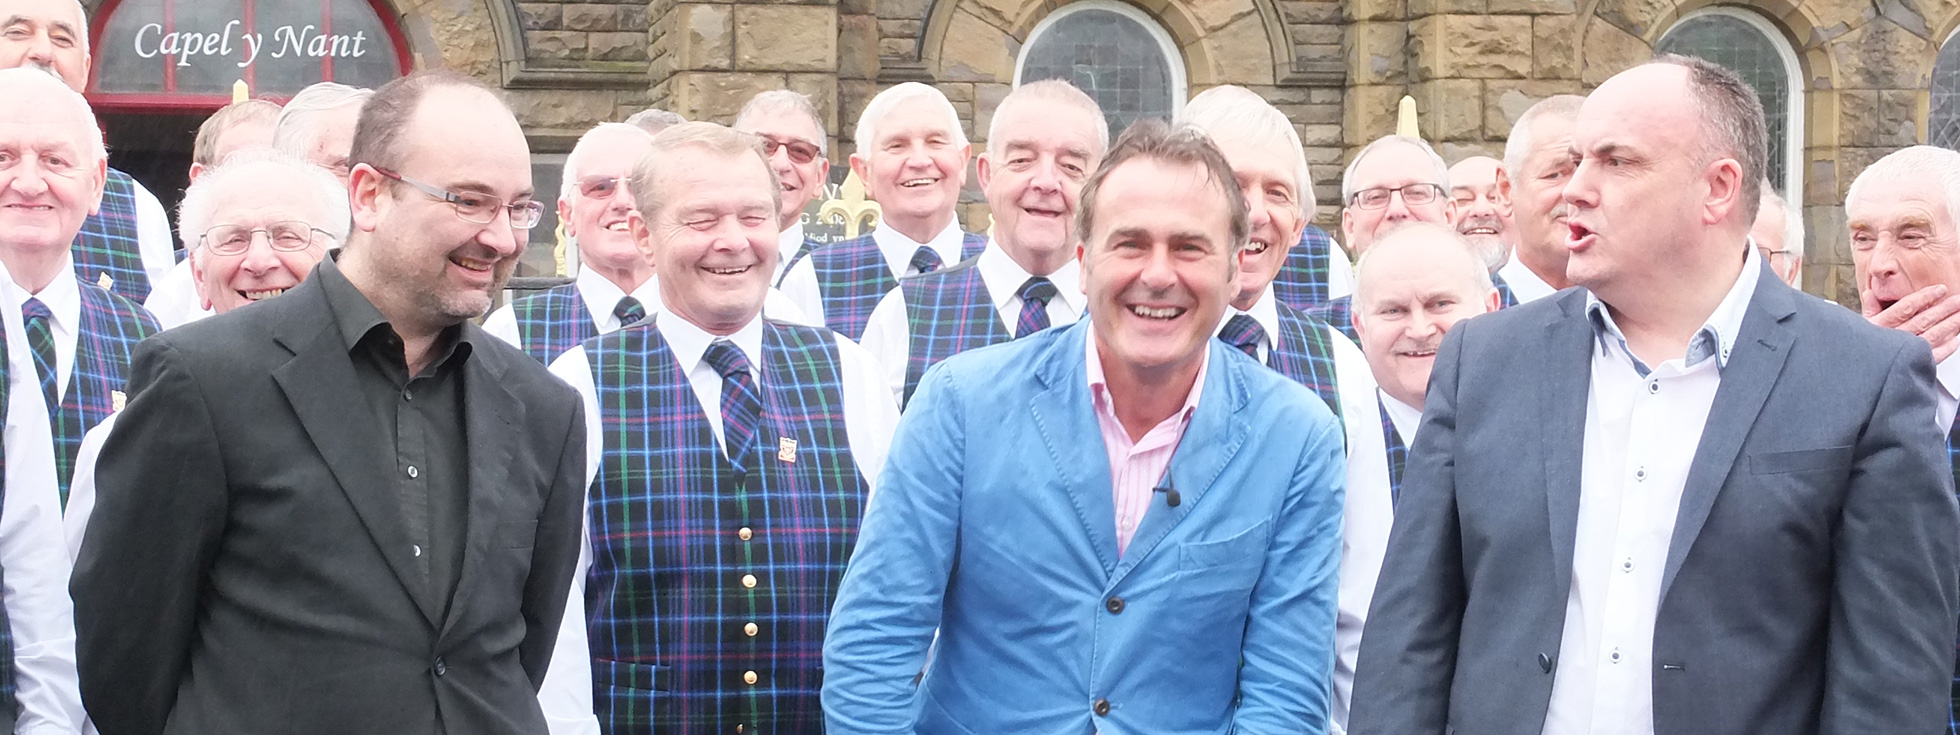 https://www.morristonrfcmalechoir.co.uk/wp-content/uploads/2016/09/DSCF7664.jpg